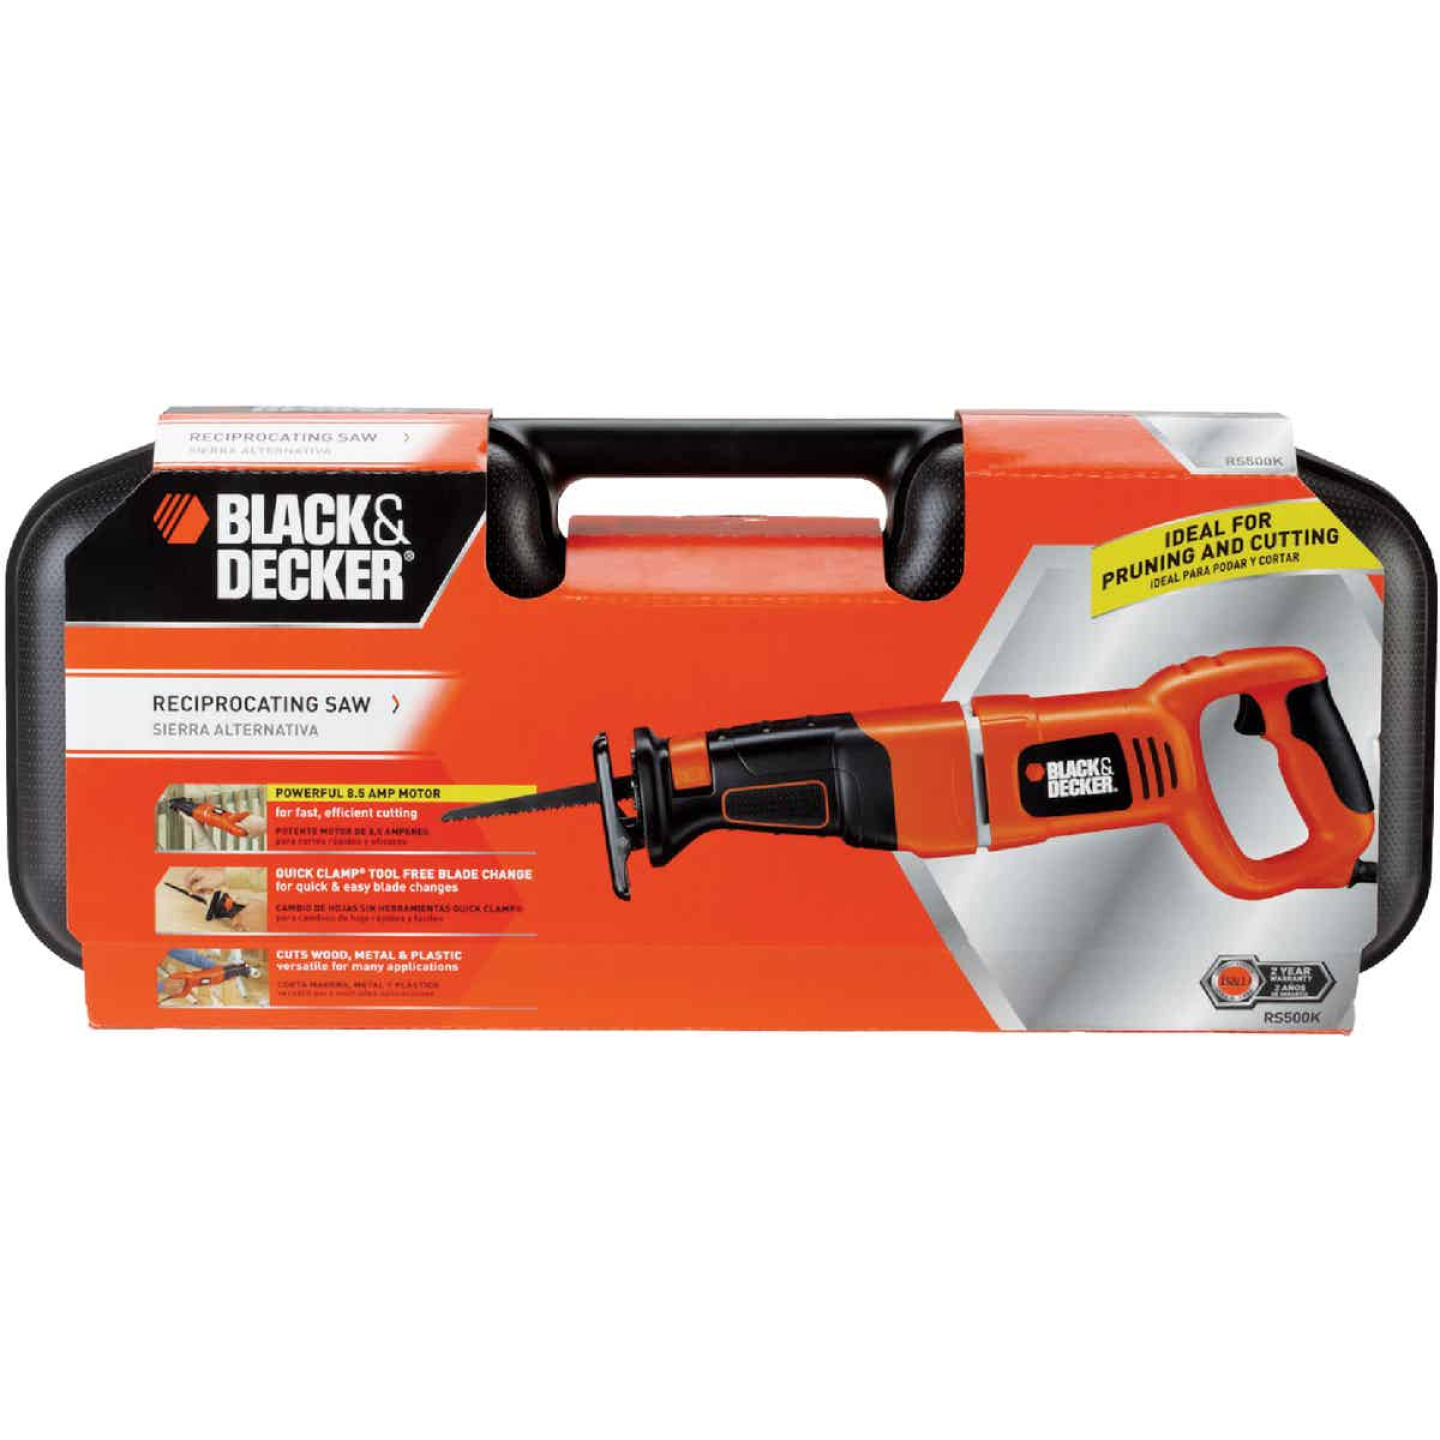 Black & Decker 8.5-Amp Reciprocating Saw Kit Image 9